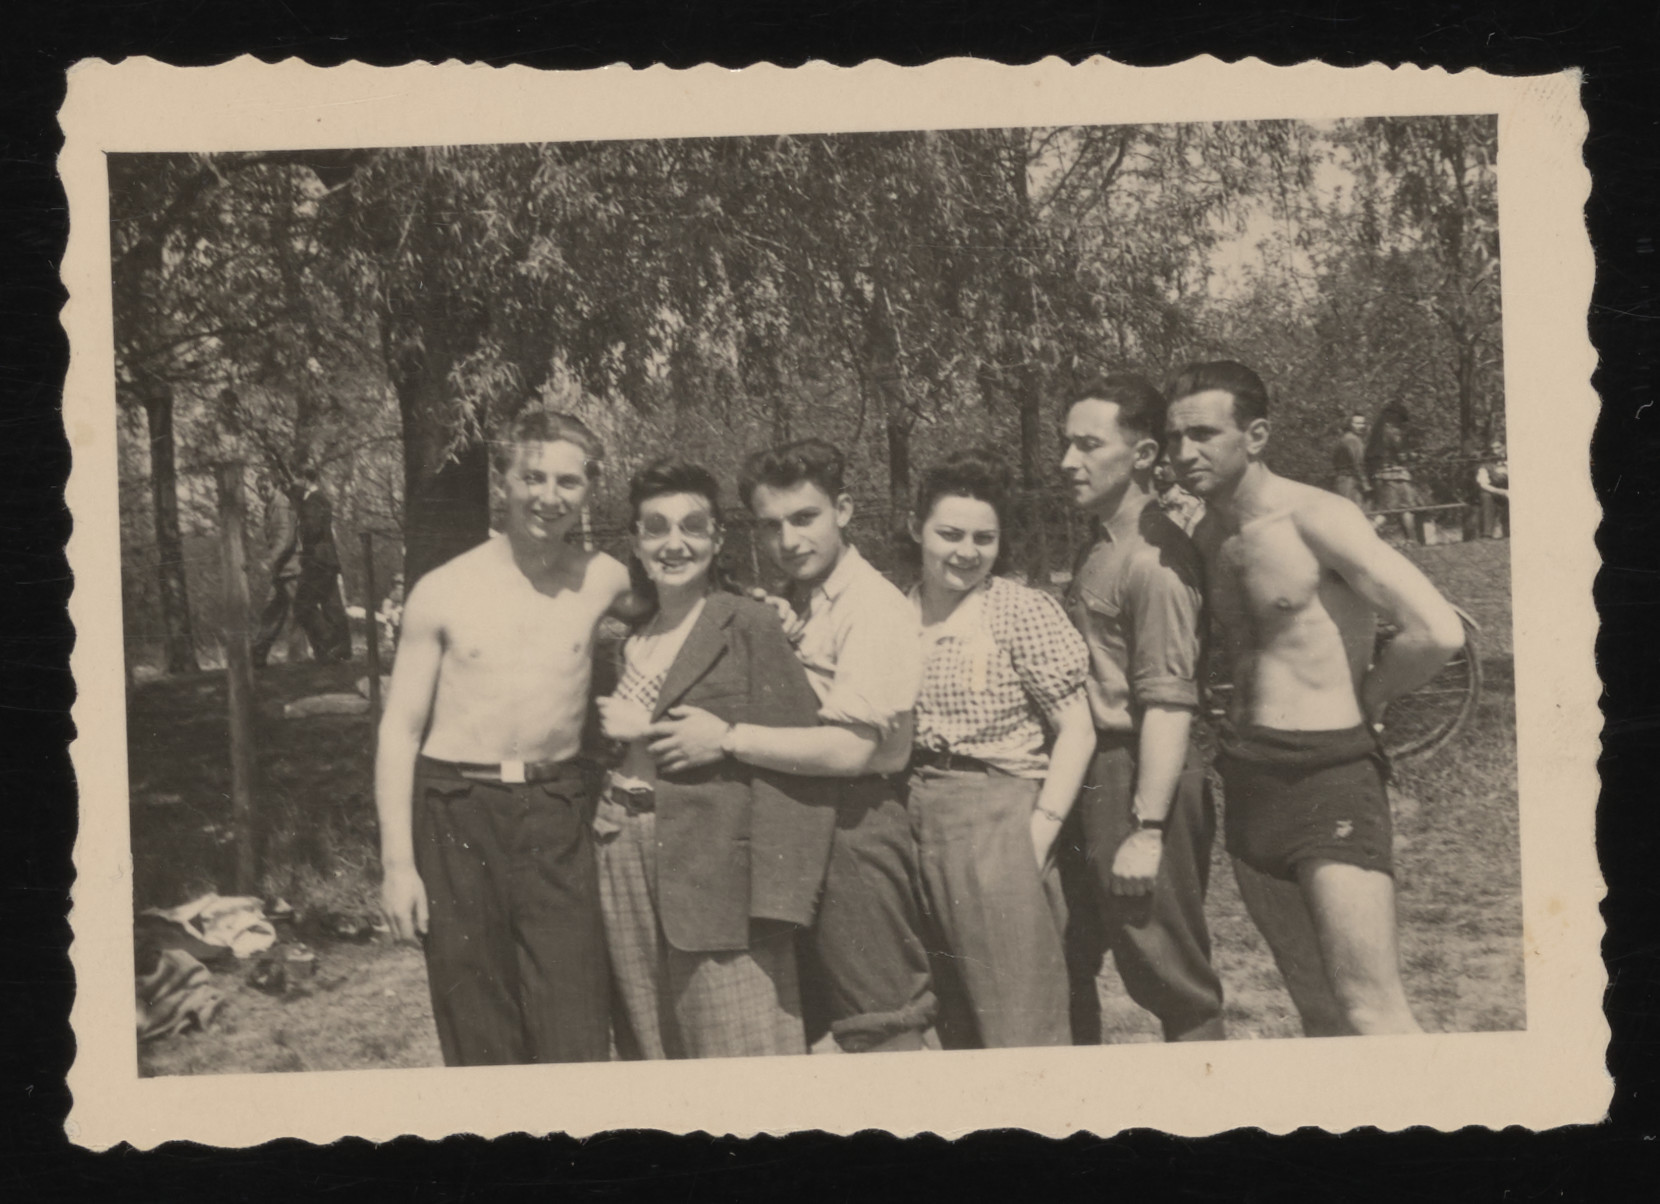 Group portrait of Polish Jewish youth on an outing organized by the Ichud Zionist youth movement in Lodz.  Among those pictured is Gina Tabaczynska (third from the right) and Ryszard Fenigsztajn (second from the right).